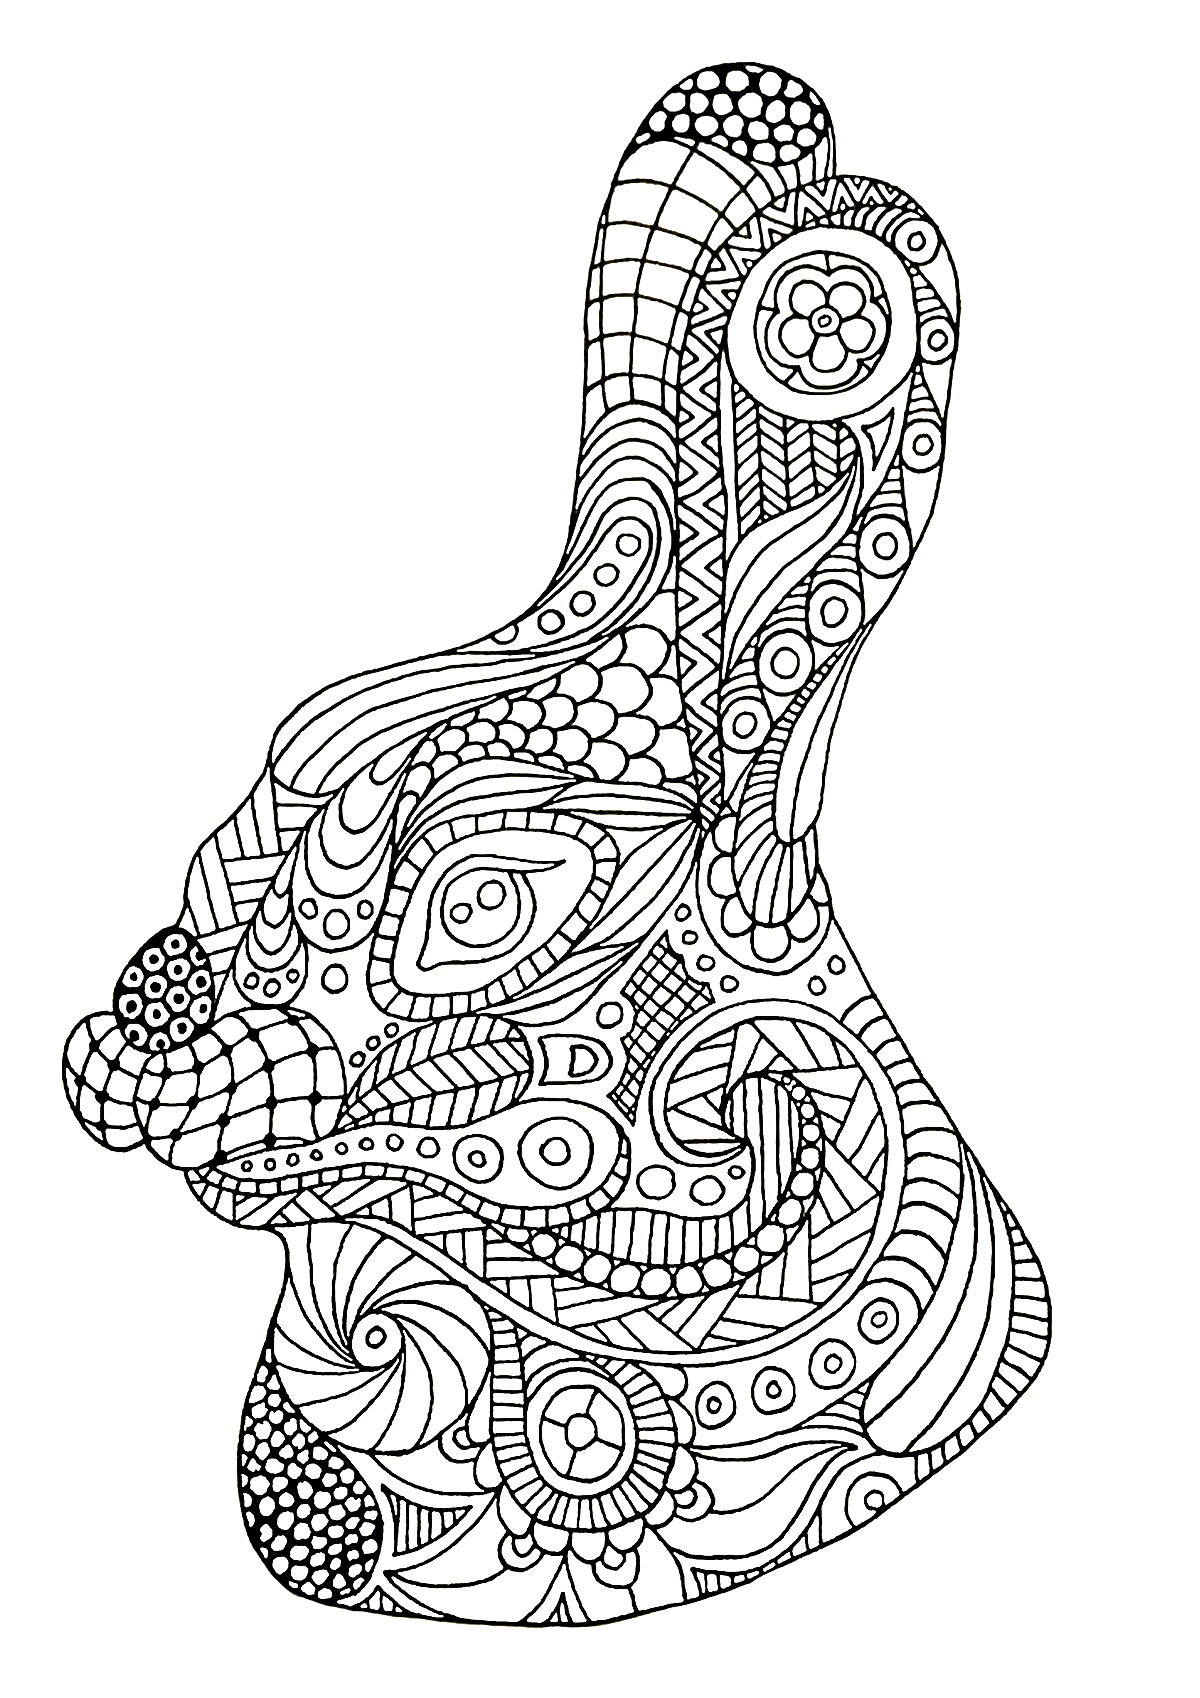 Rabbit head drawn with Zentangle style